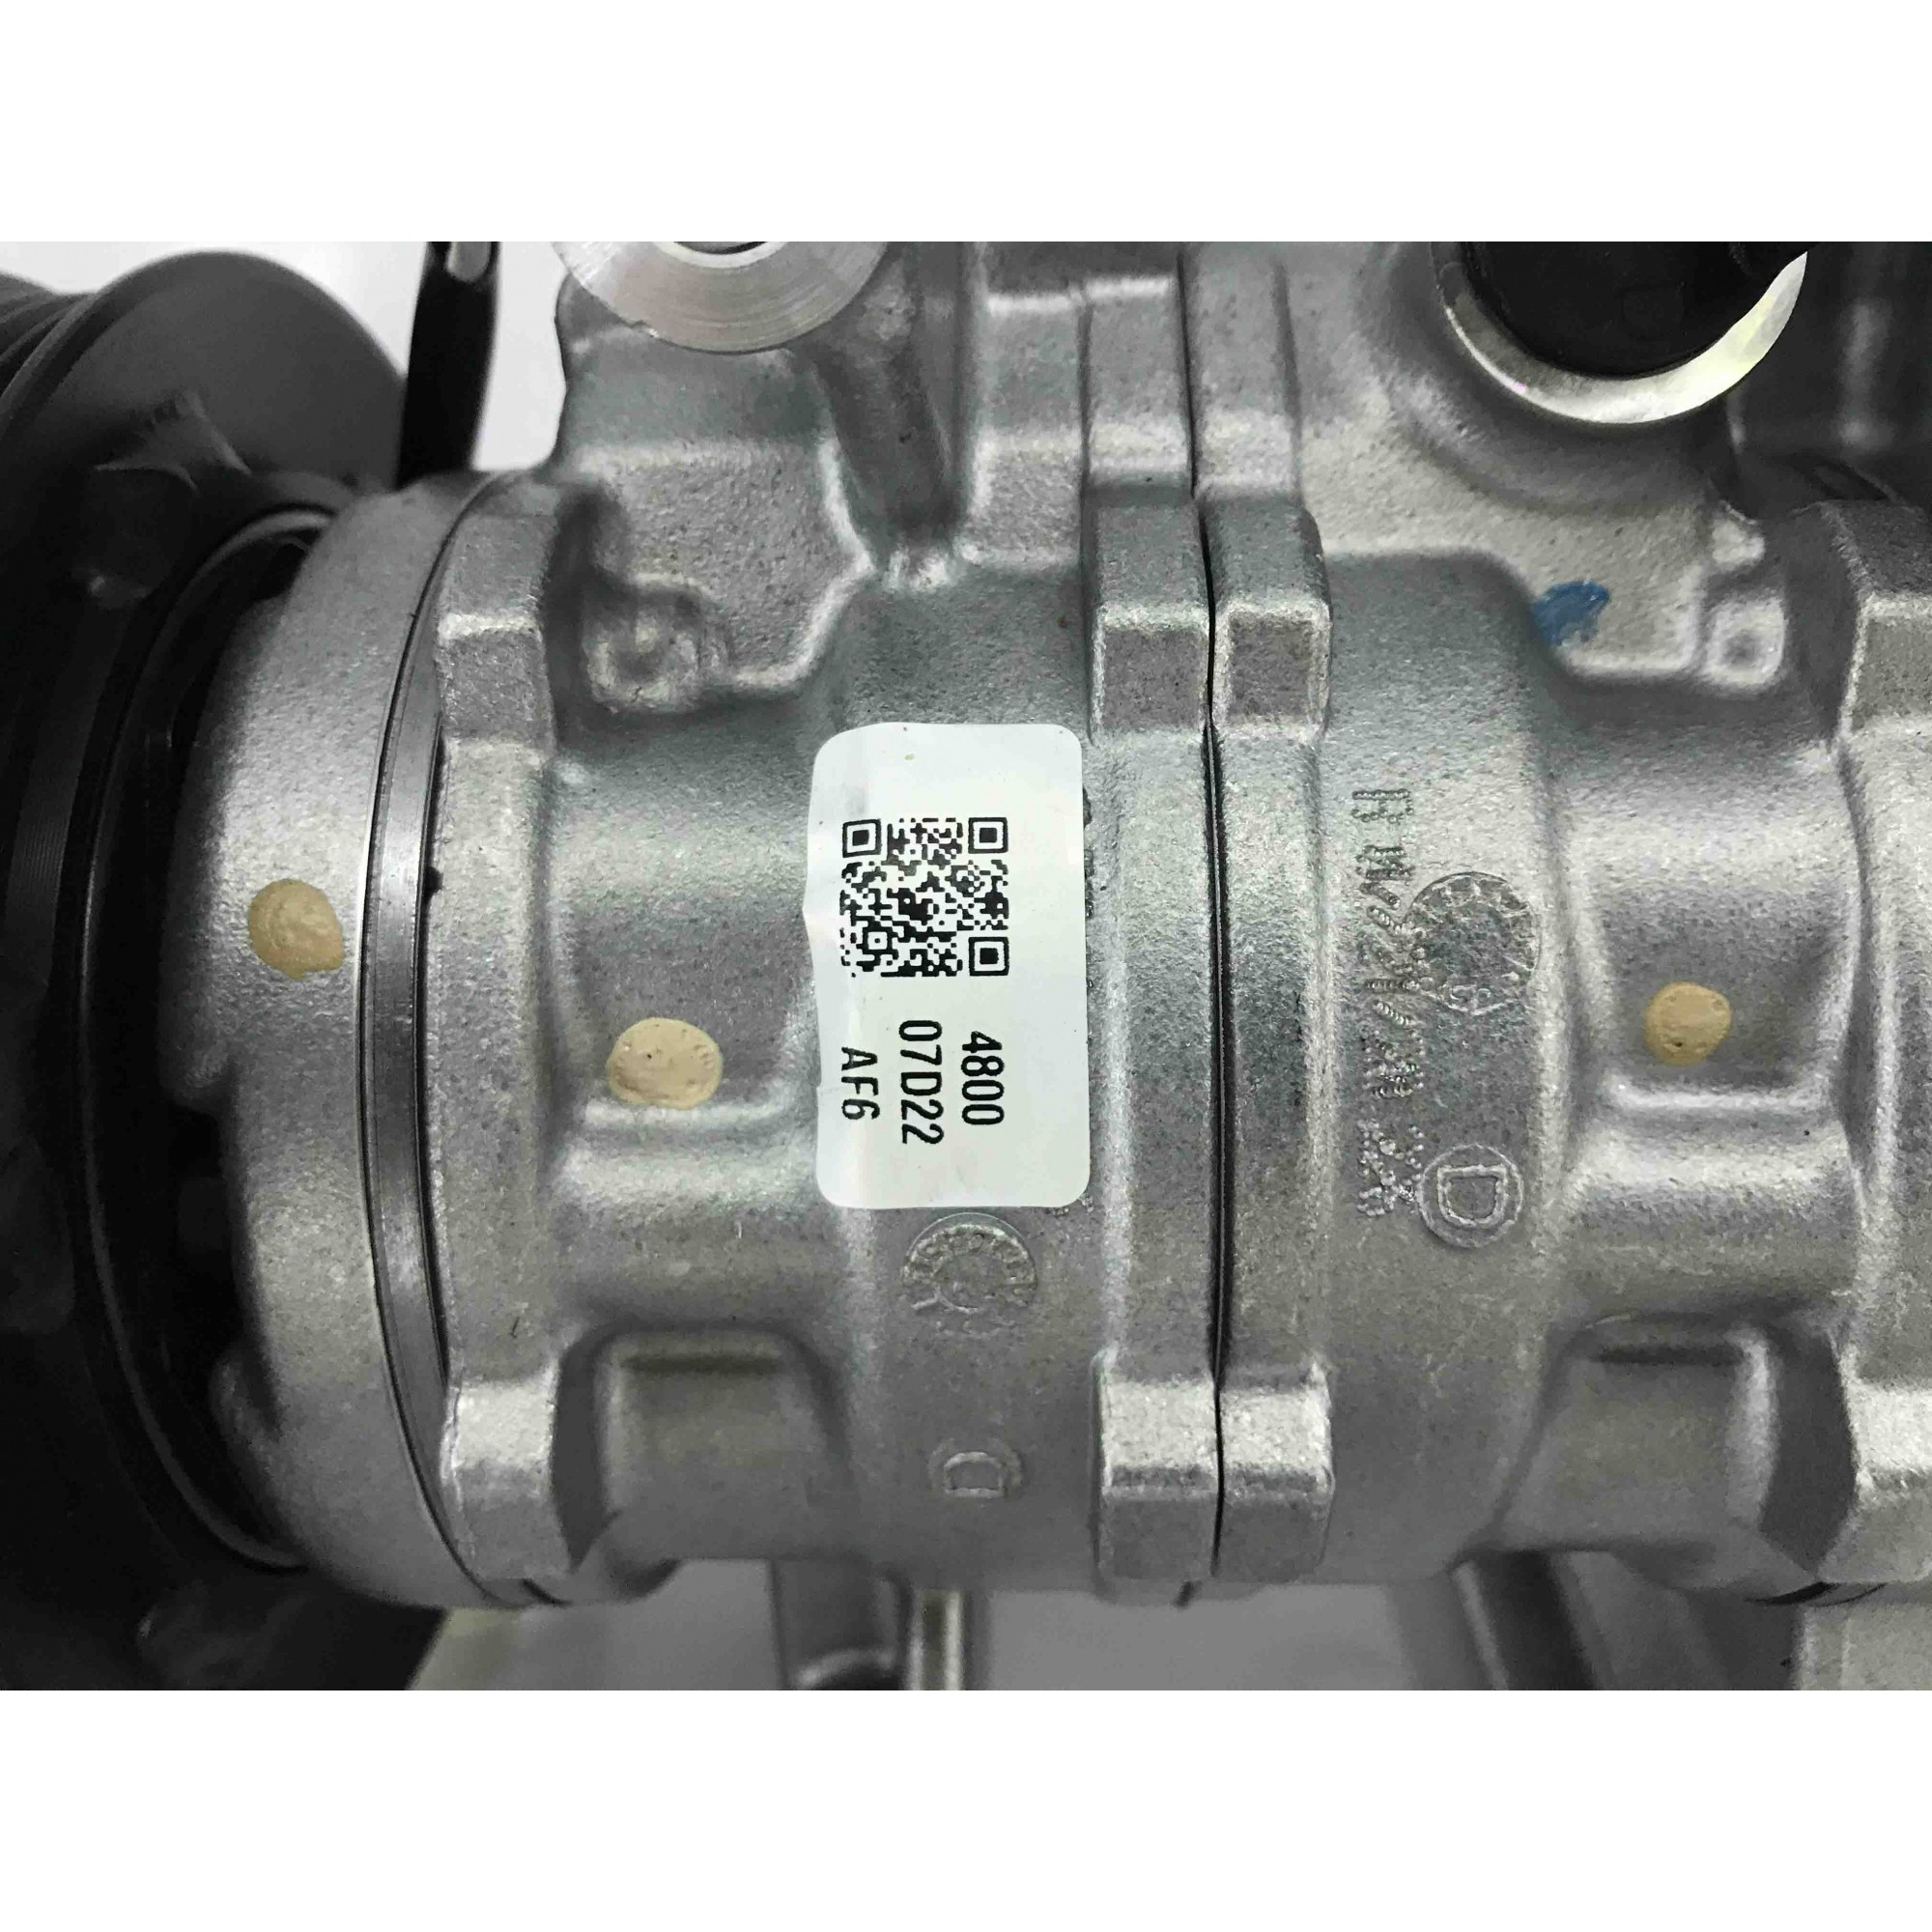 Compressor Fit City 2015 2016 2017 2018 original denso